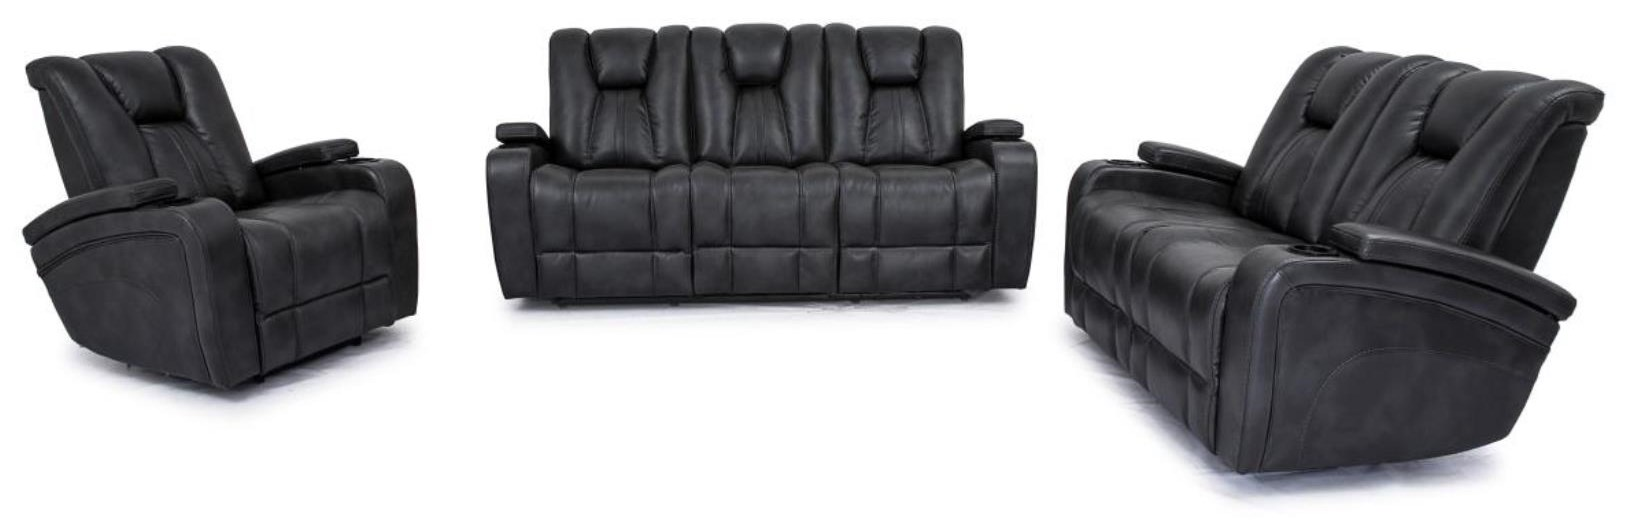 3 PC Reclining Living Room Set